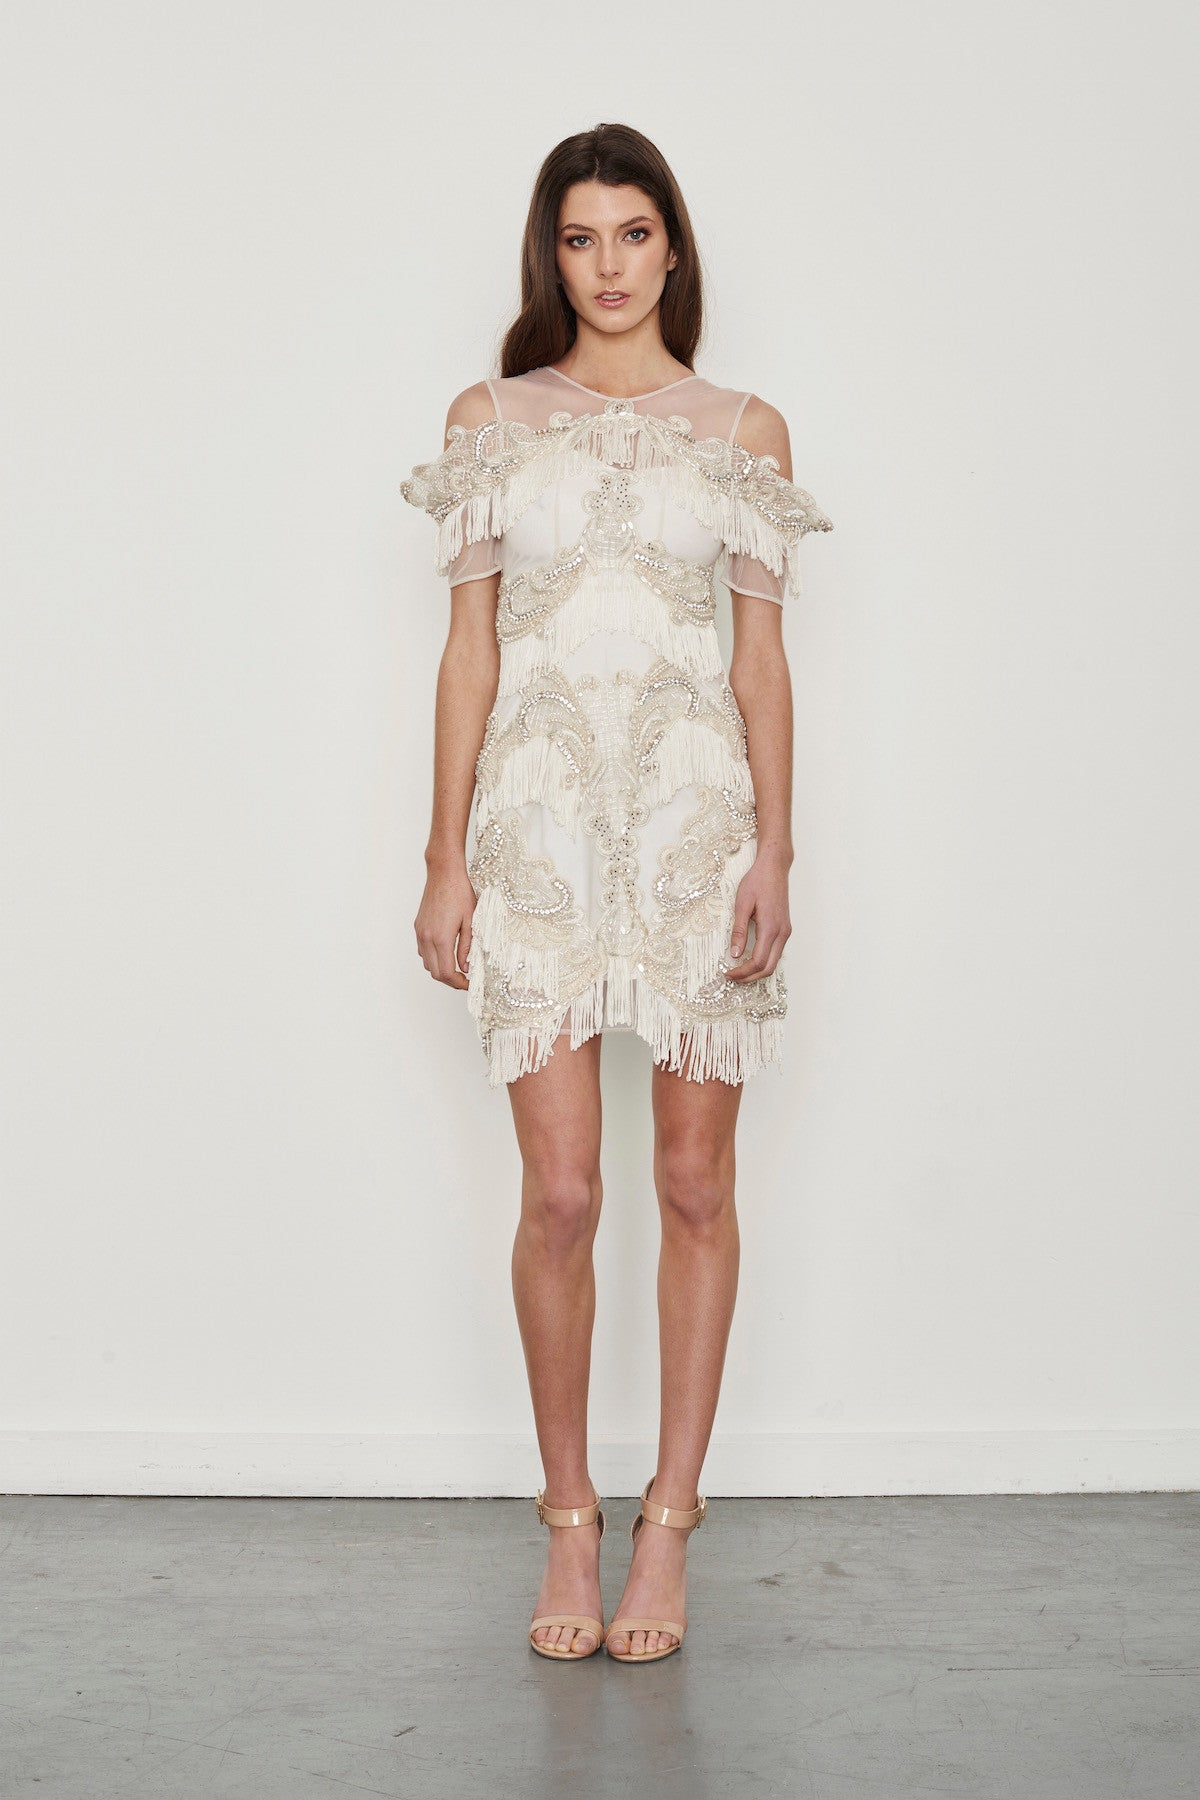 8116a4c55322 Hire the Thurley Almost Famous White fully beaded mini dress with fringe  tassels along the hem